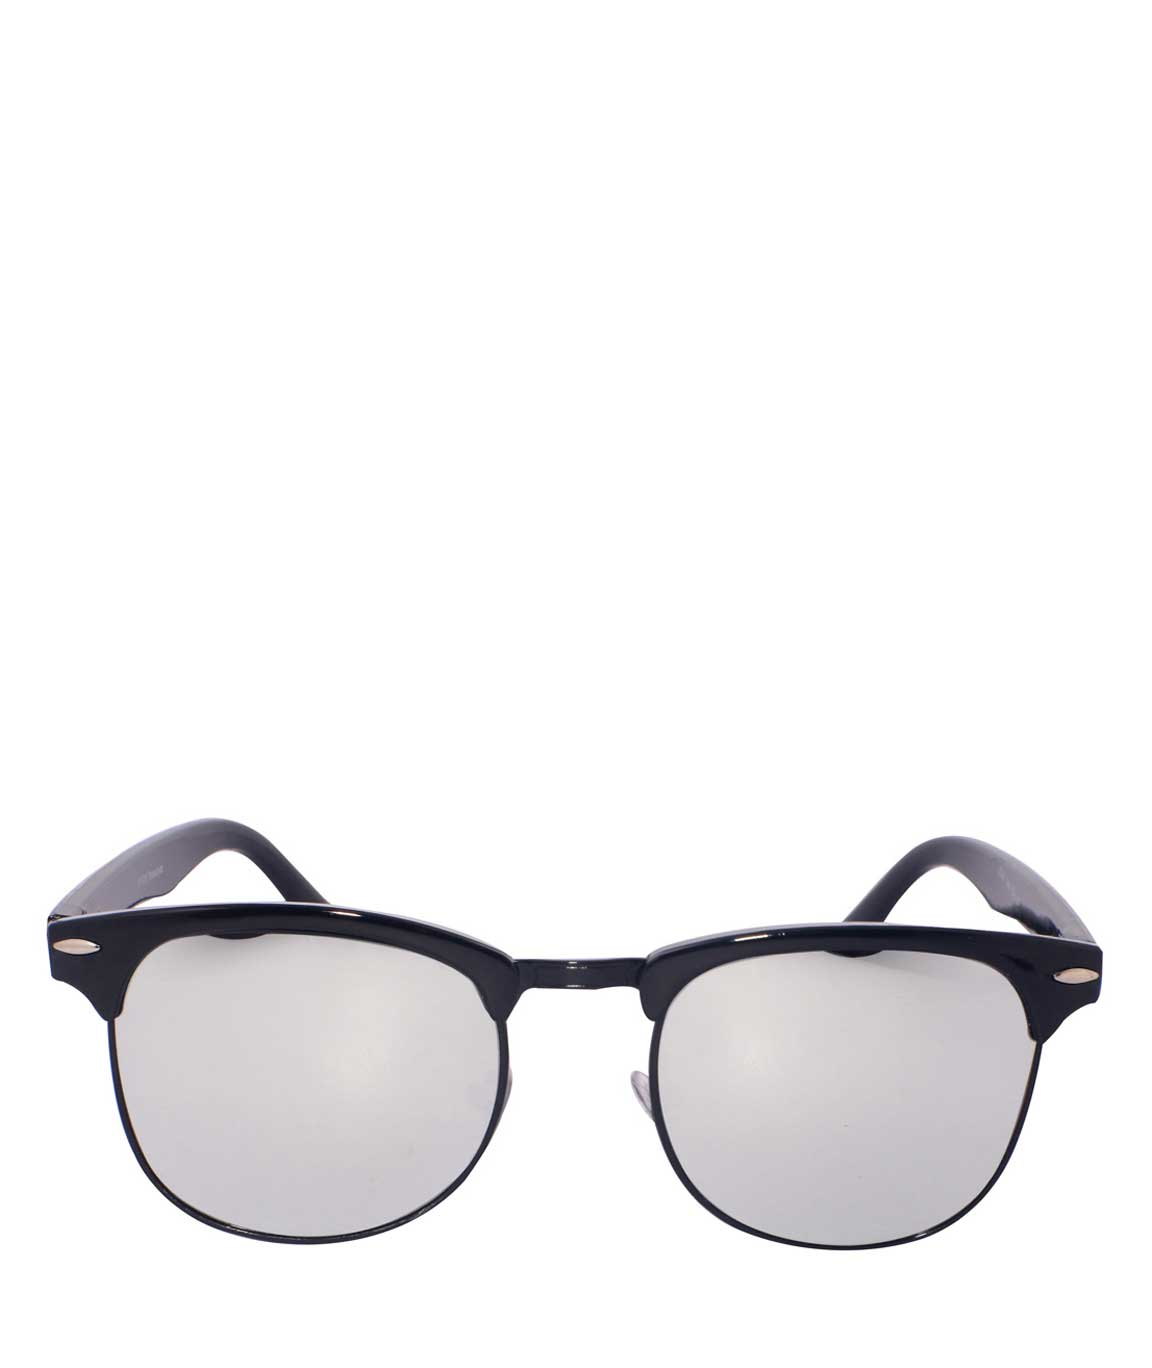 BLACK GREY WAYFARER